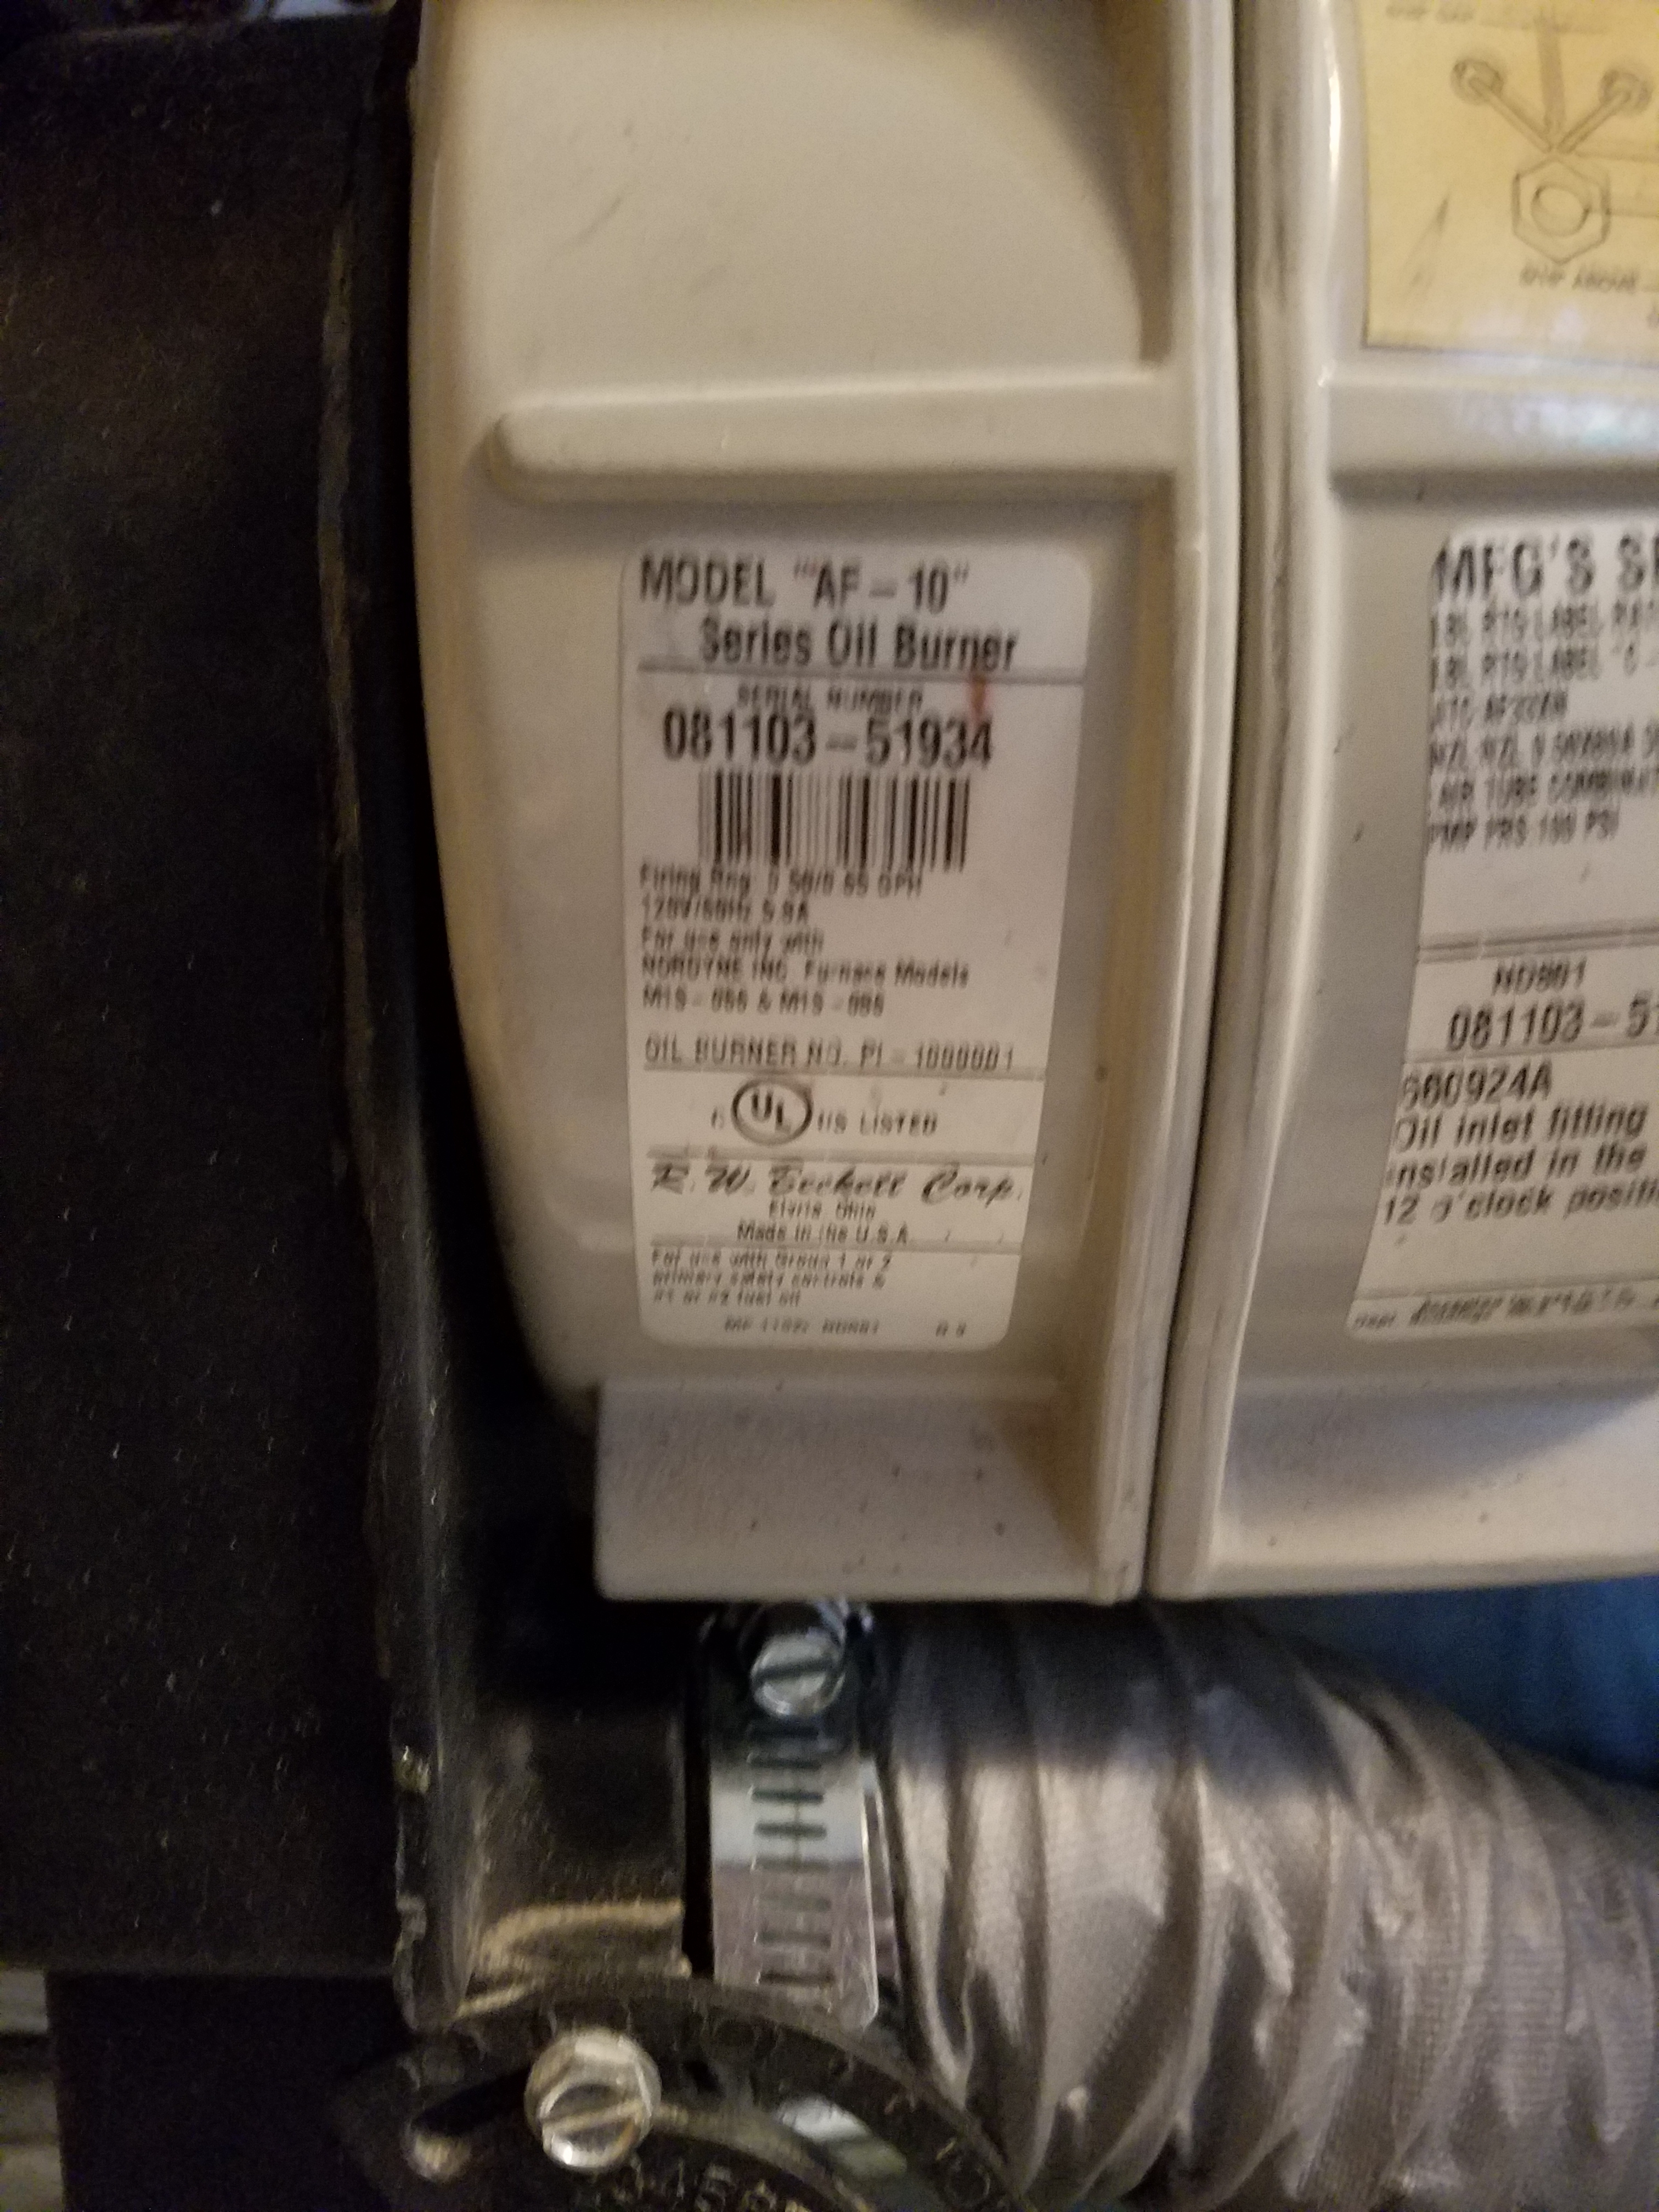 New Honeywell R7284u To Replace R7184b Wiring Question Heating Oil Furnace Limit Switch Diagram Burner Model